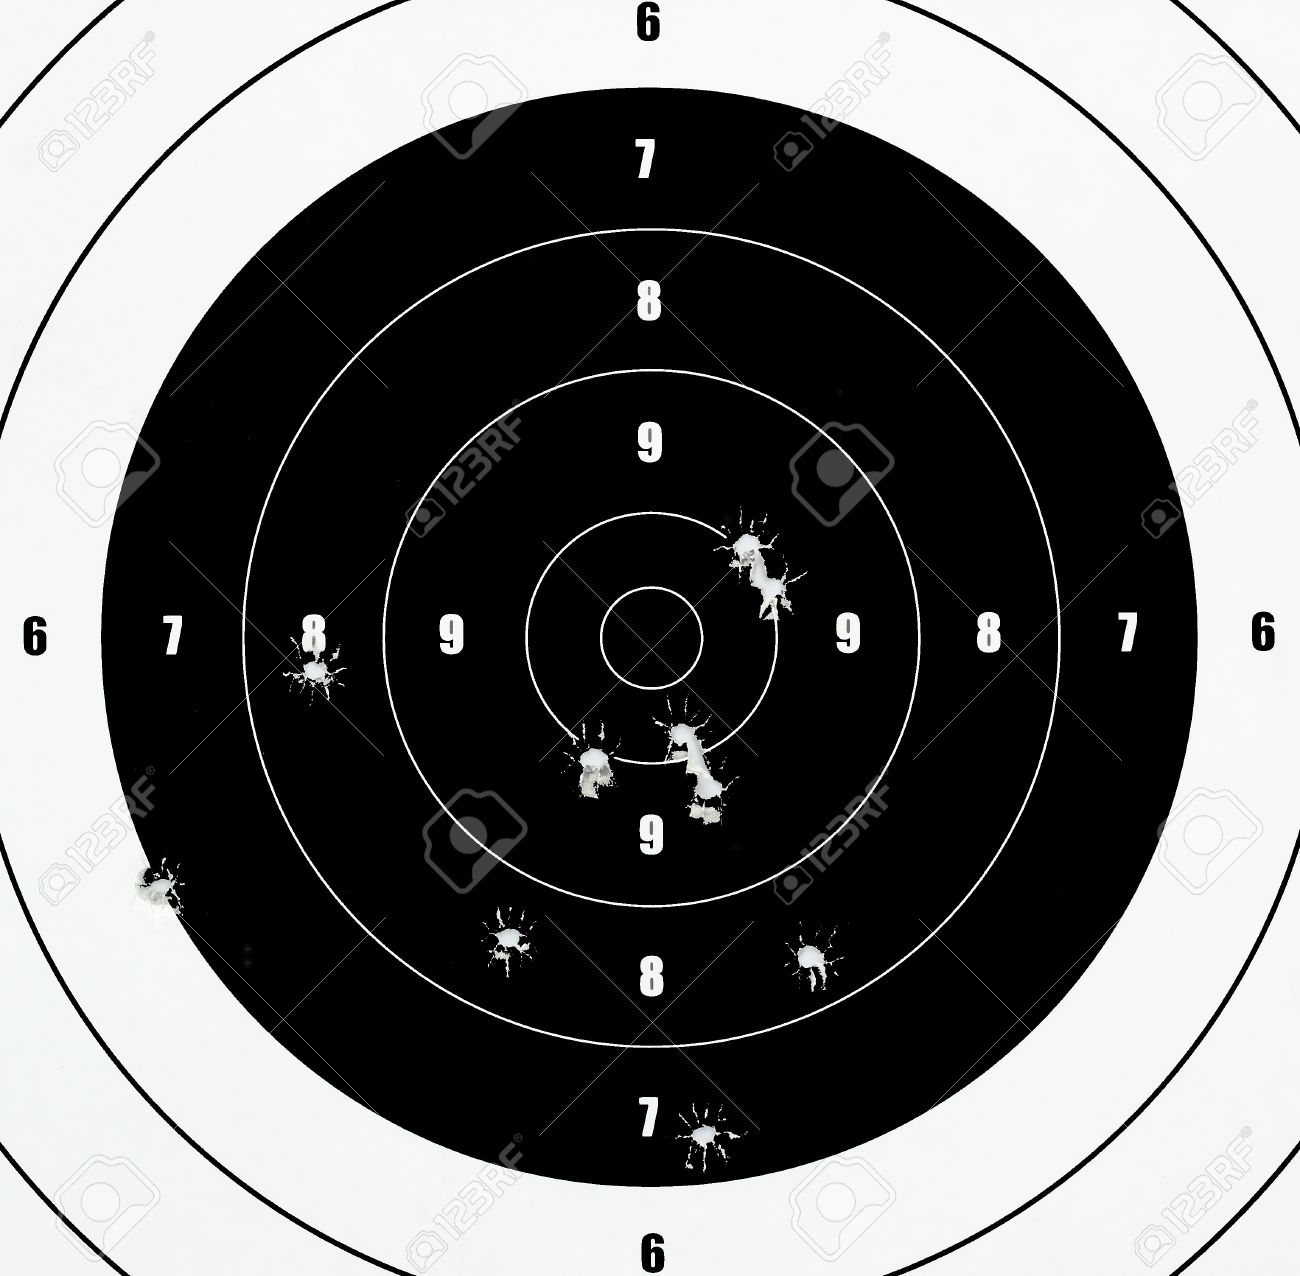 A Closeup of a practice target used for shooting with bullet holes in it. Stock Photo - 10522018